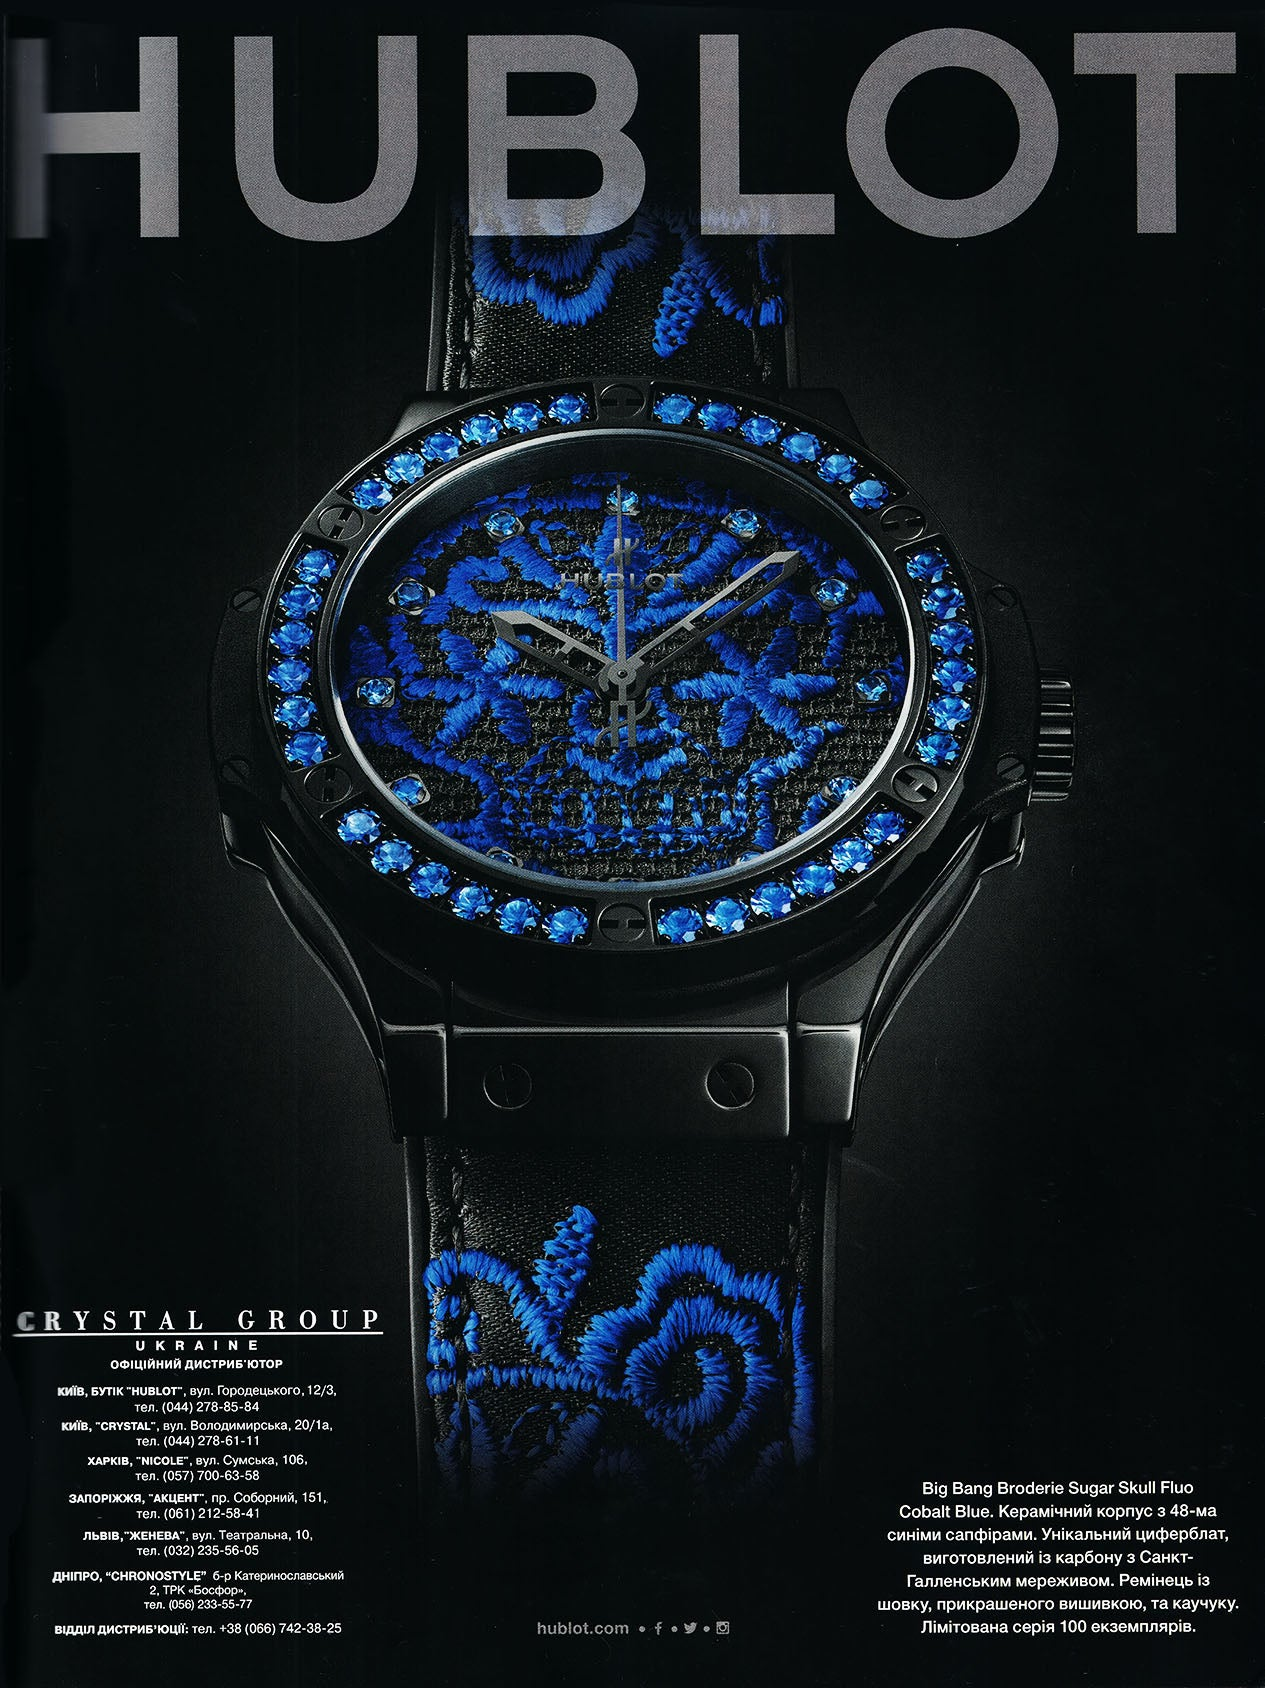 Advertising Hublot in Vogue